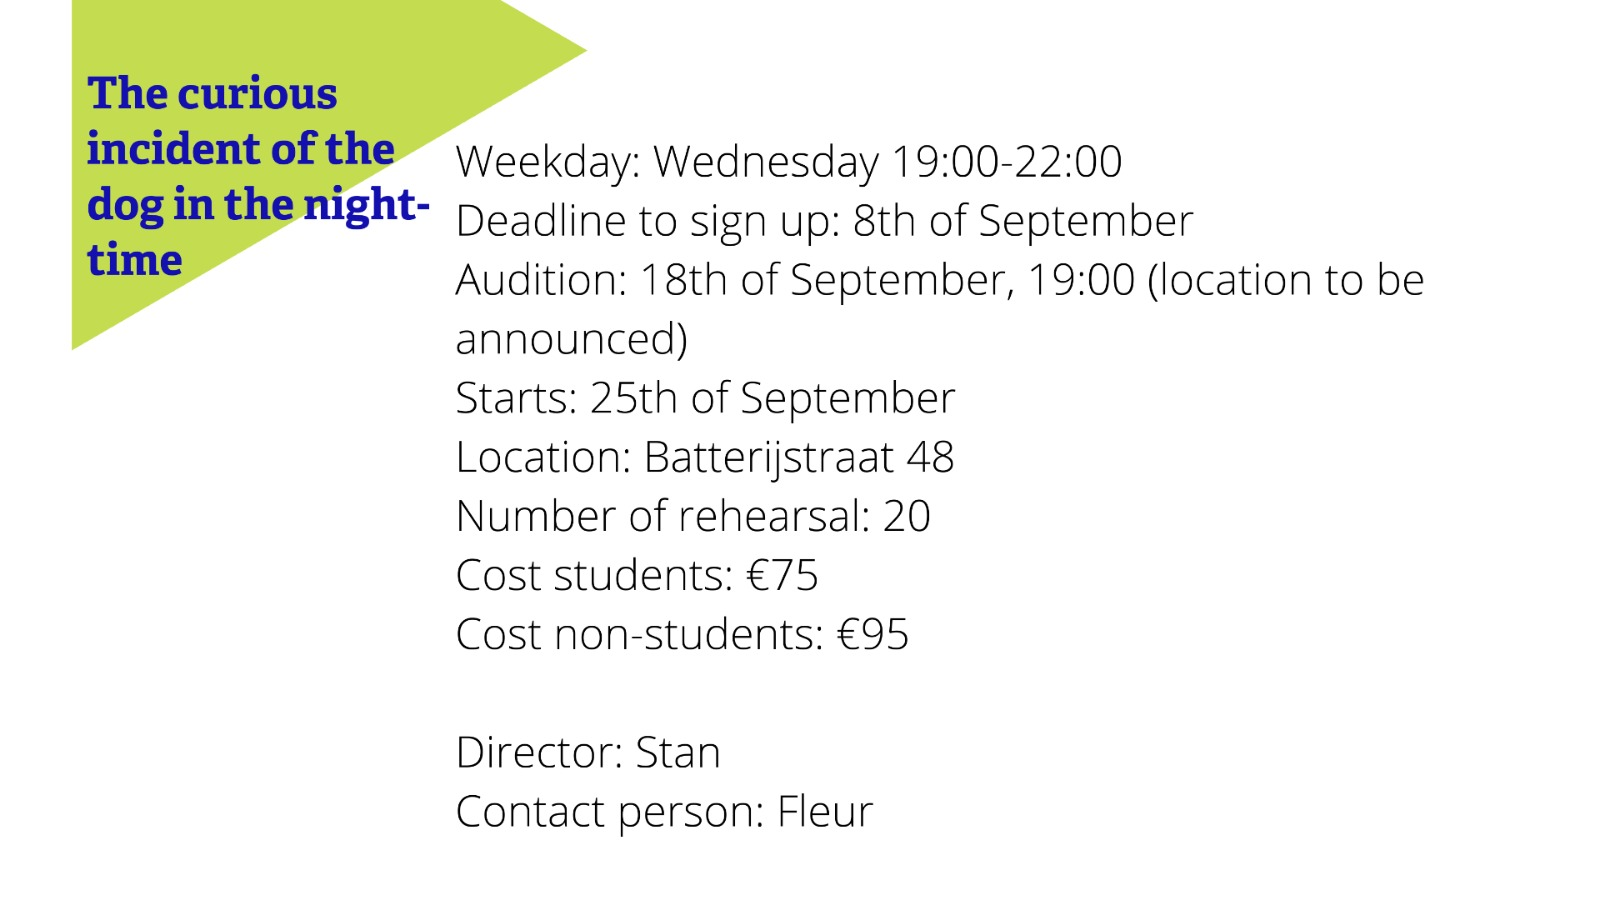 Audition: The curious incident of the dog in the night-time